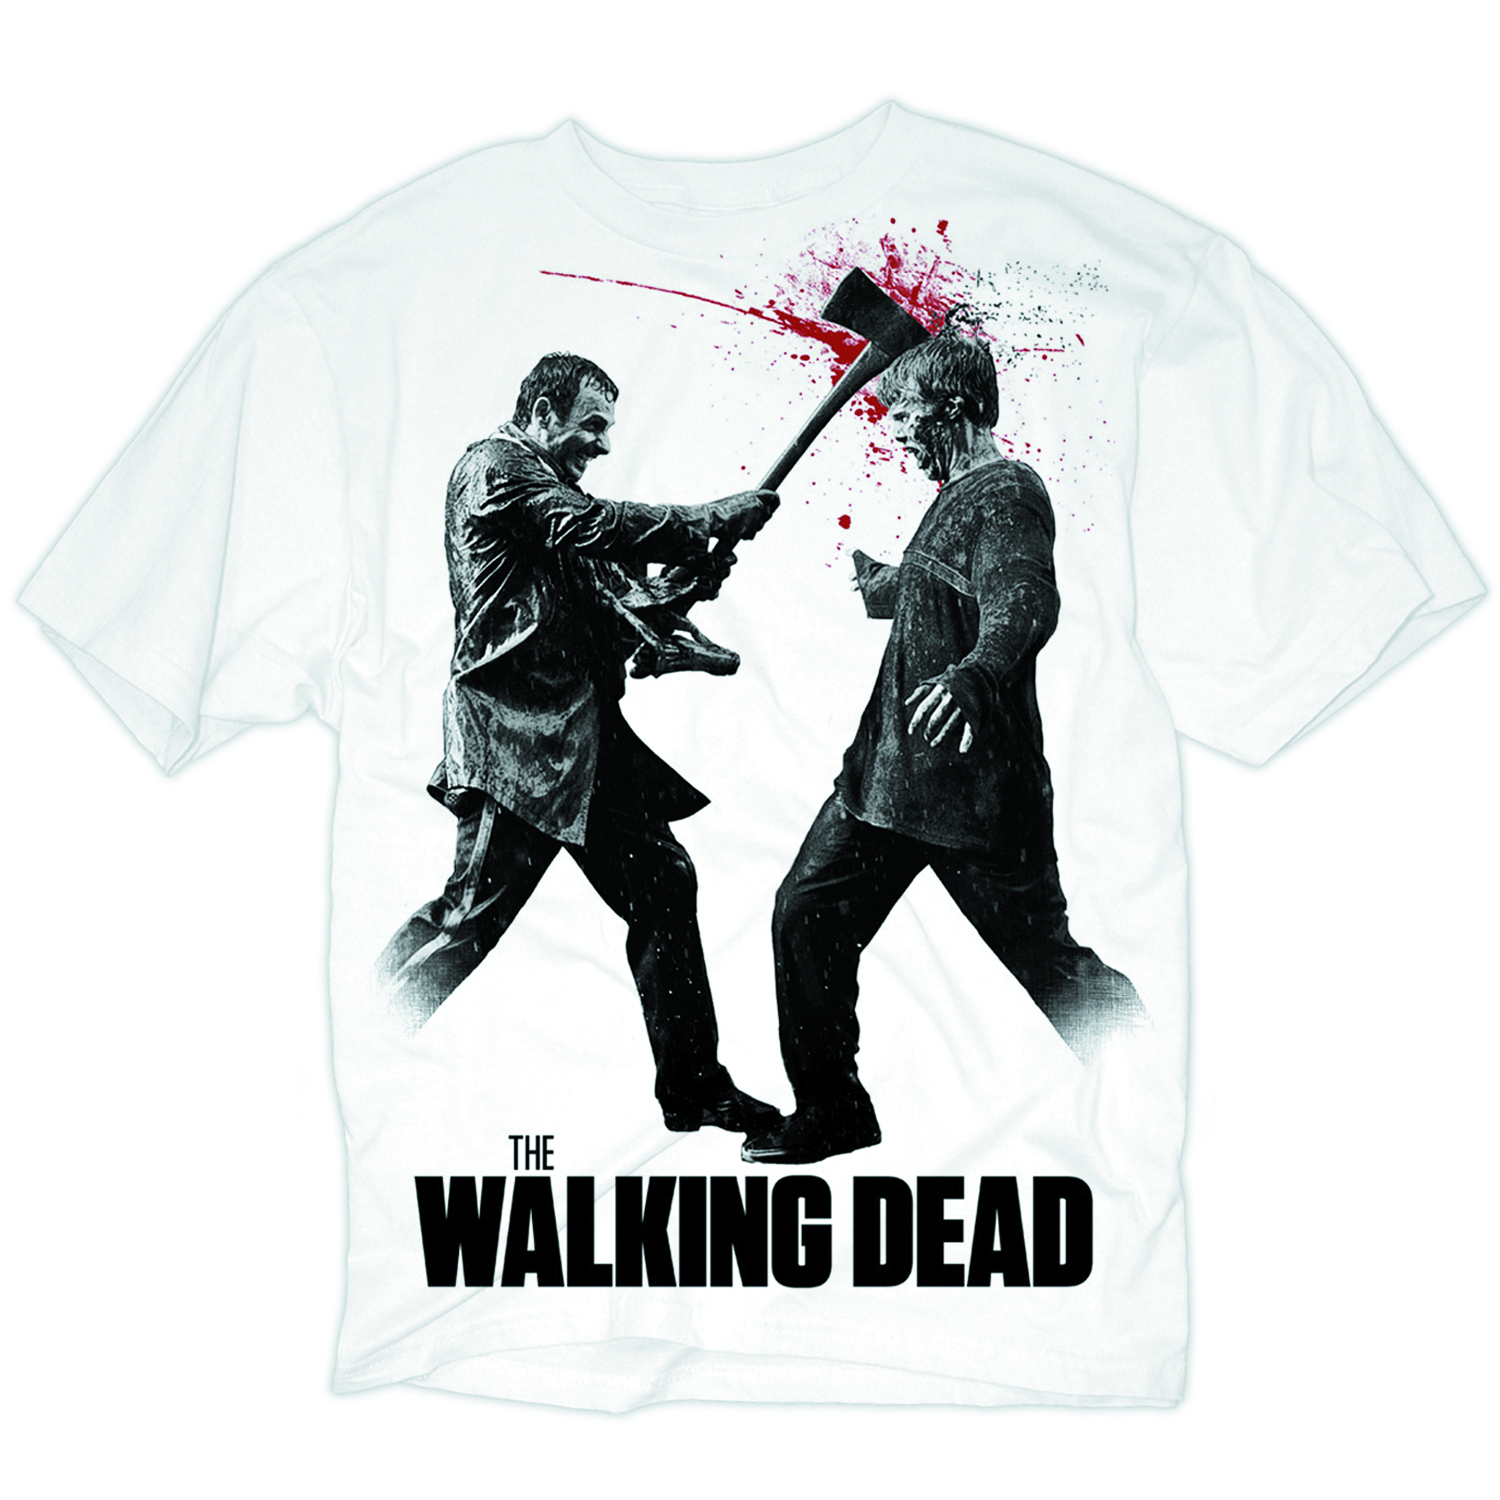 WALKING DEAD AXE TO THE HEAD T/S LG